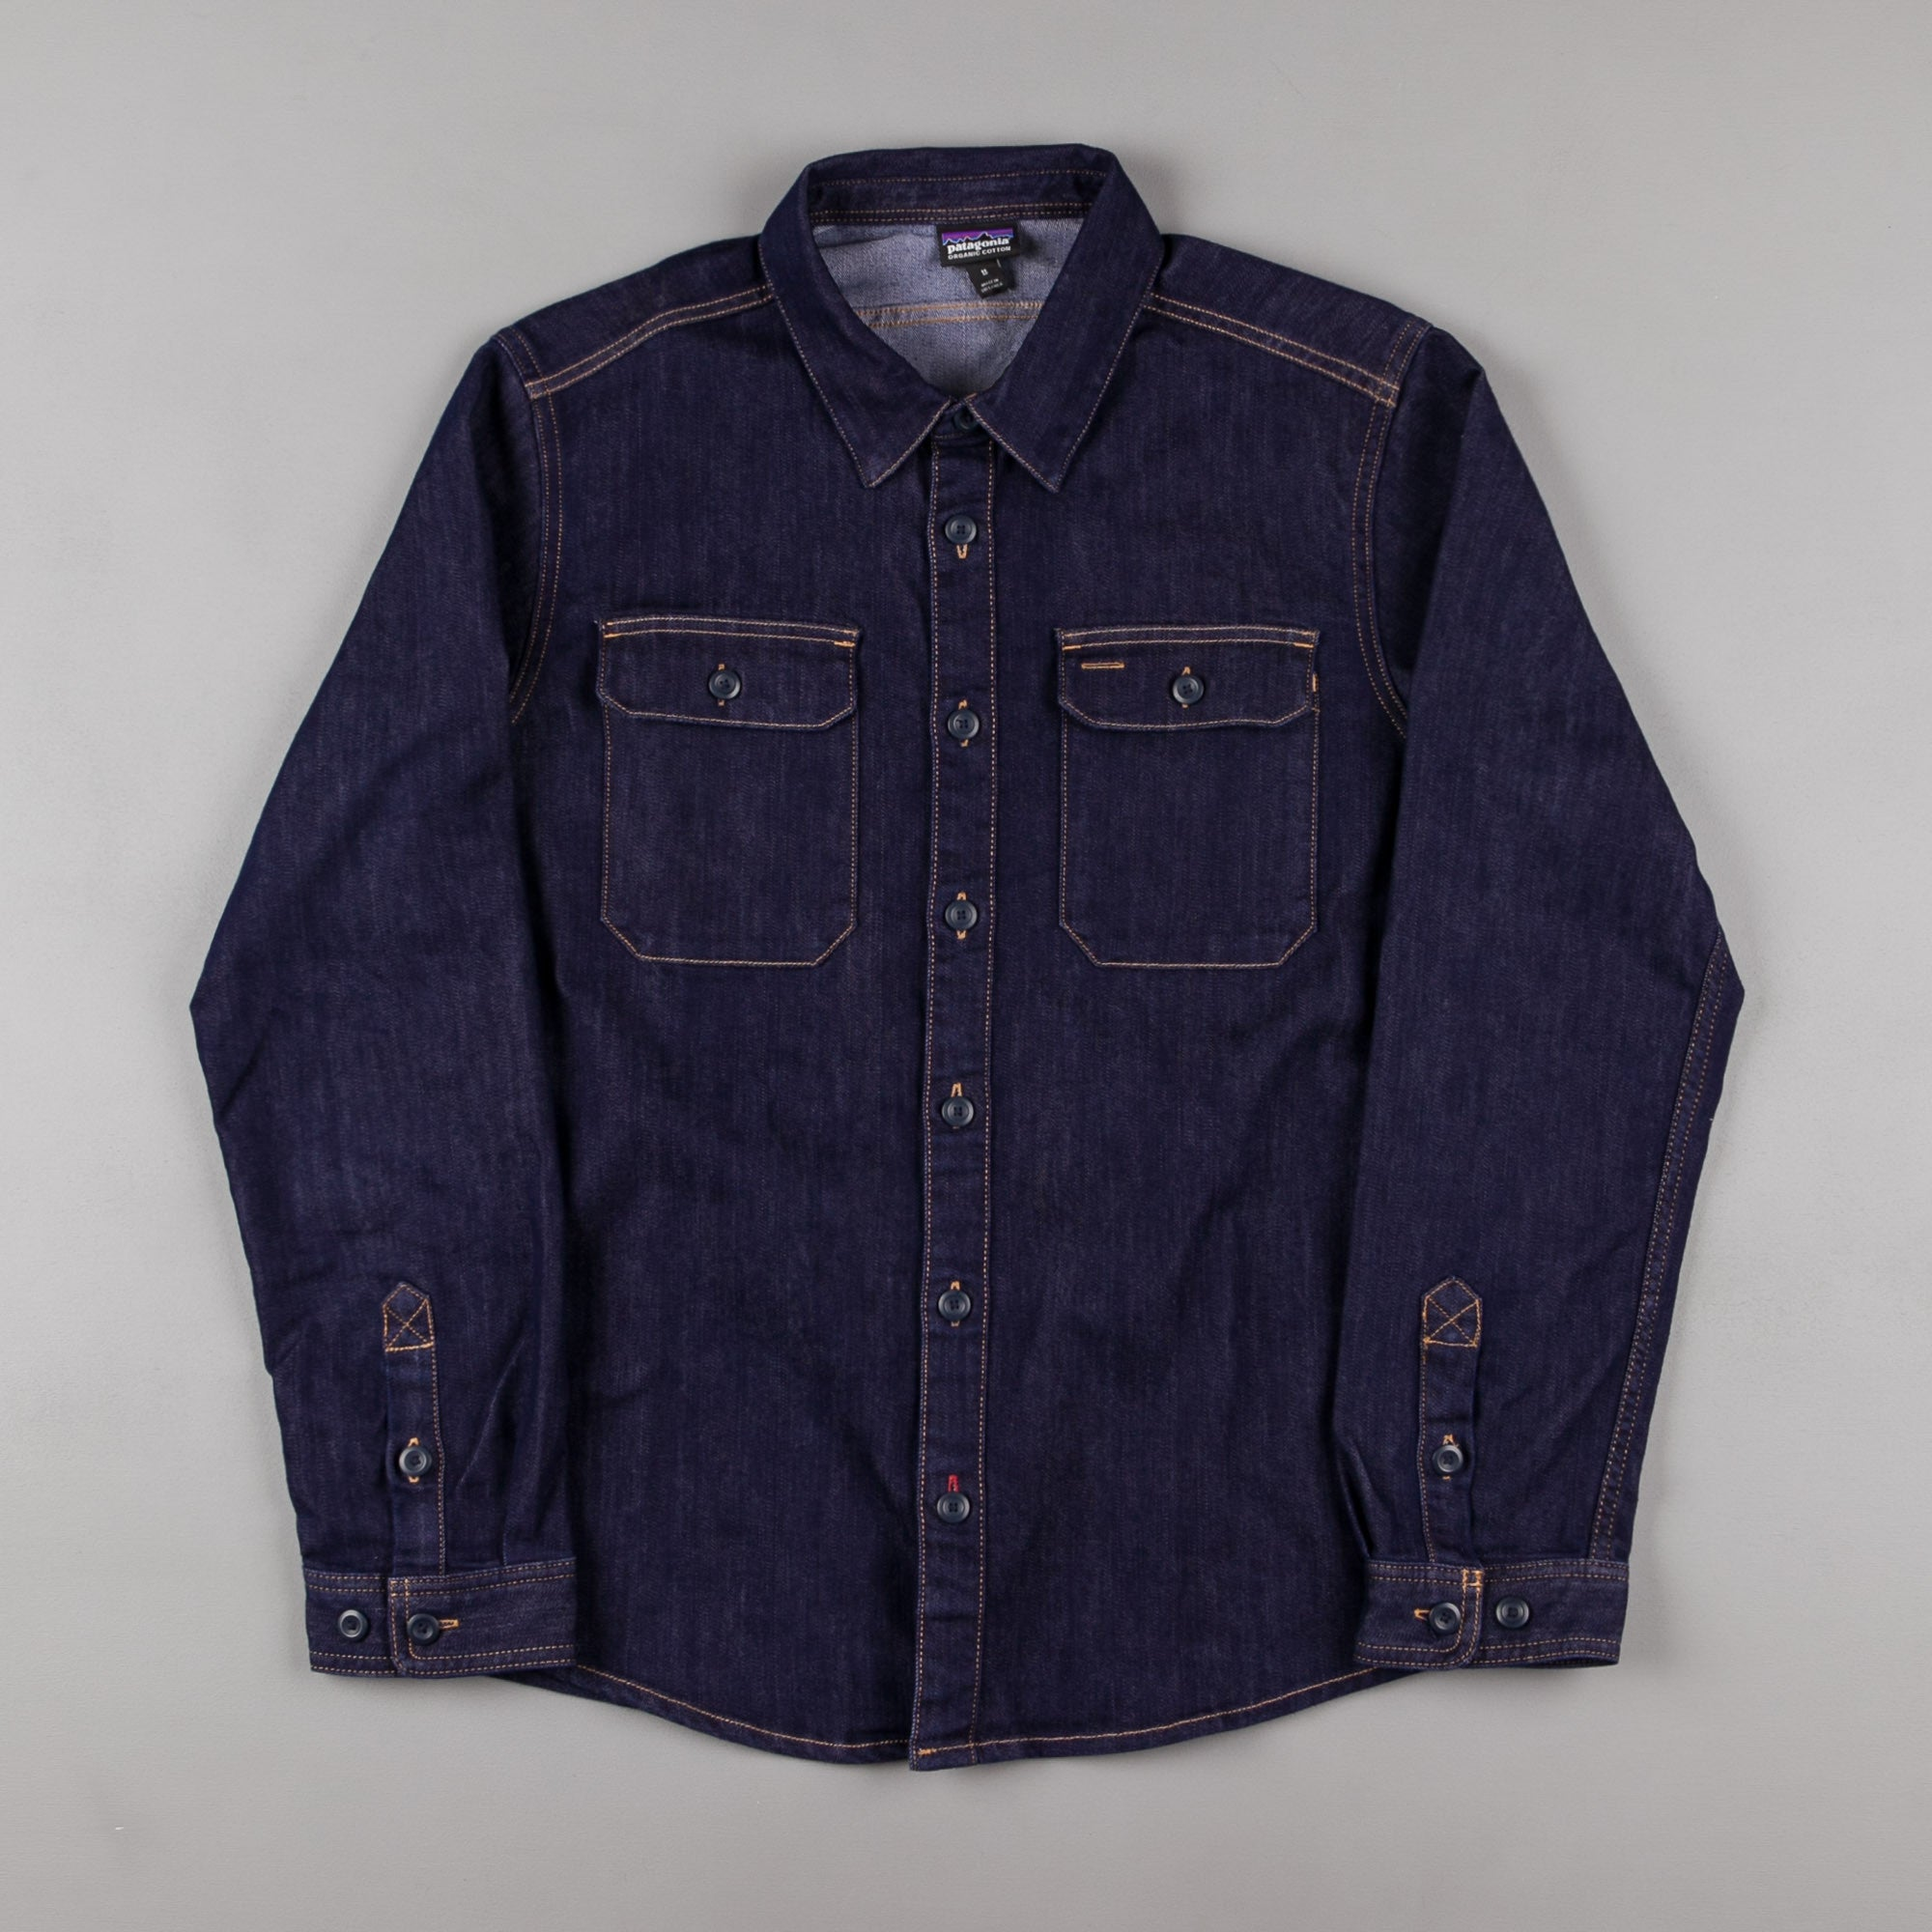 Patagonia Workwear Shirt - Dark Denim